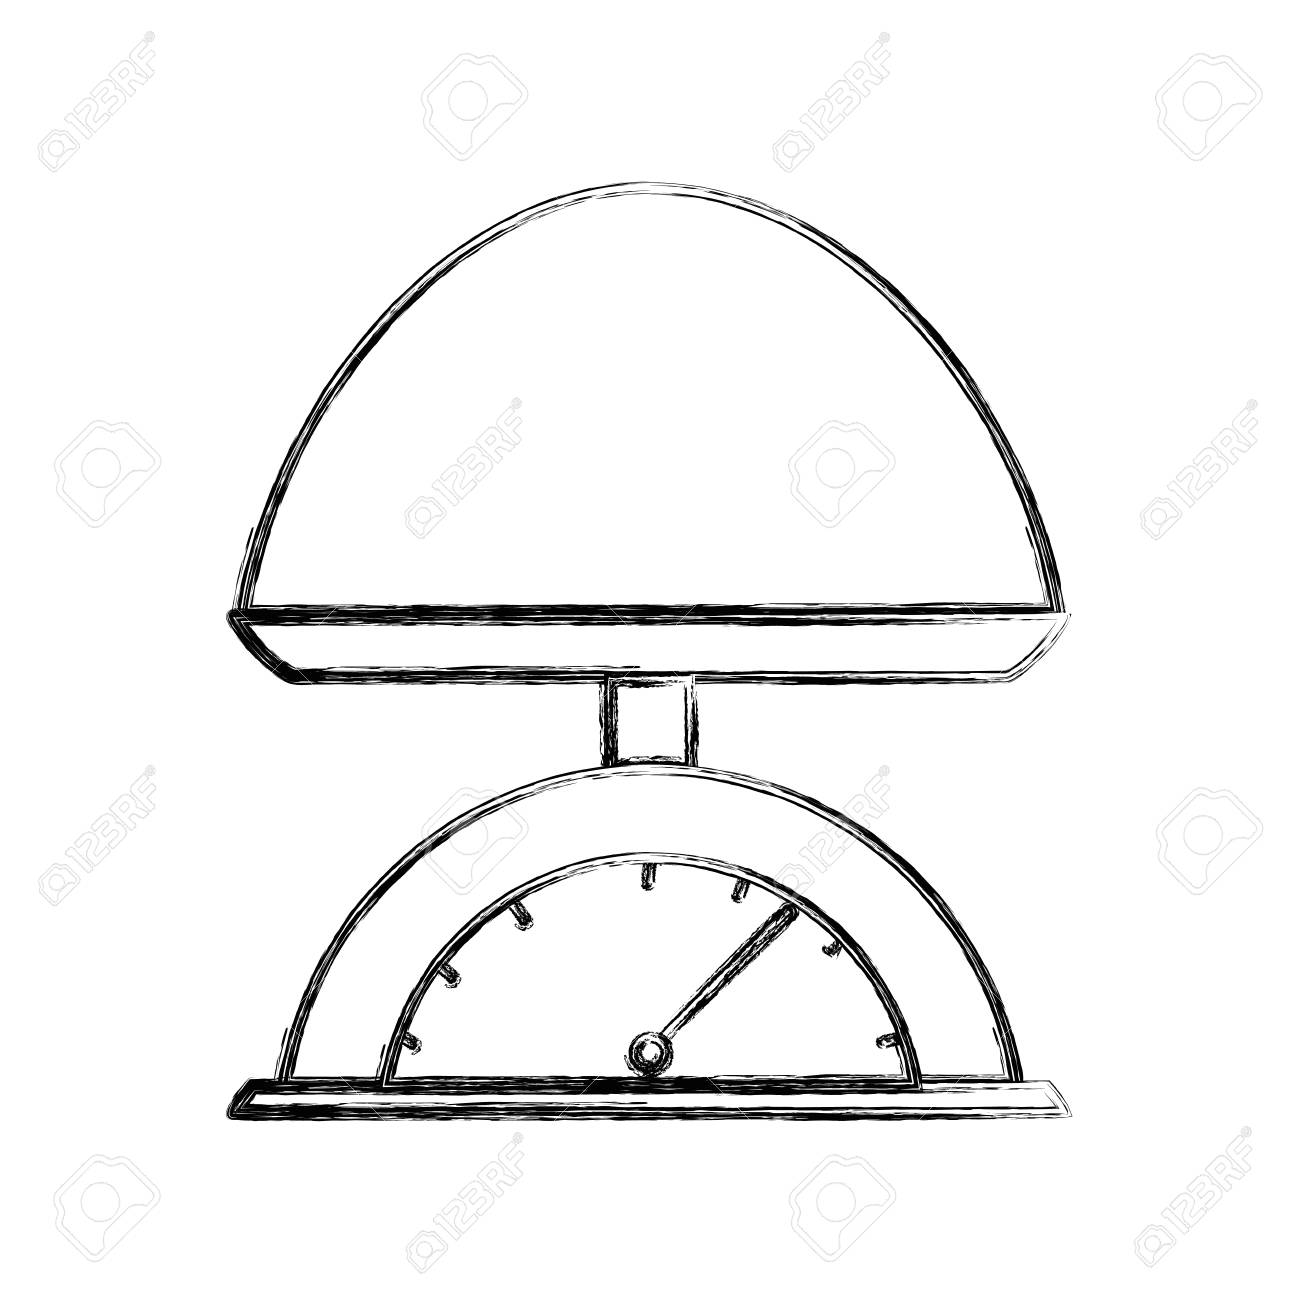 Weighing Scale Drawing at GetDrawings com | Free for personal use